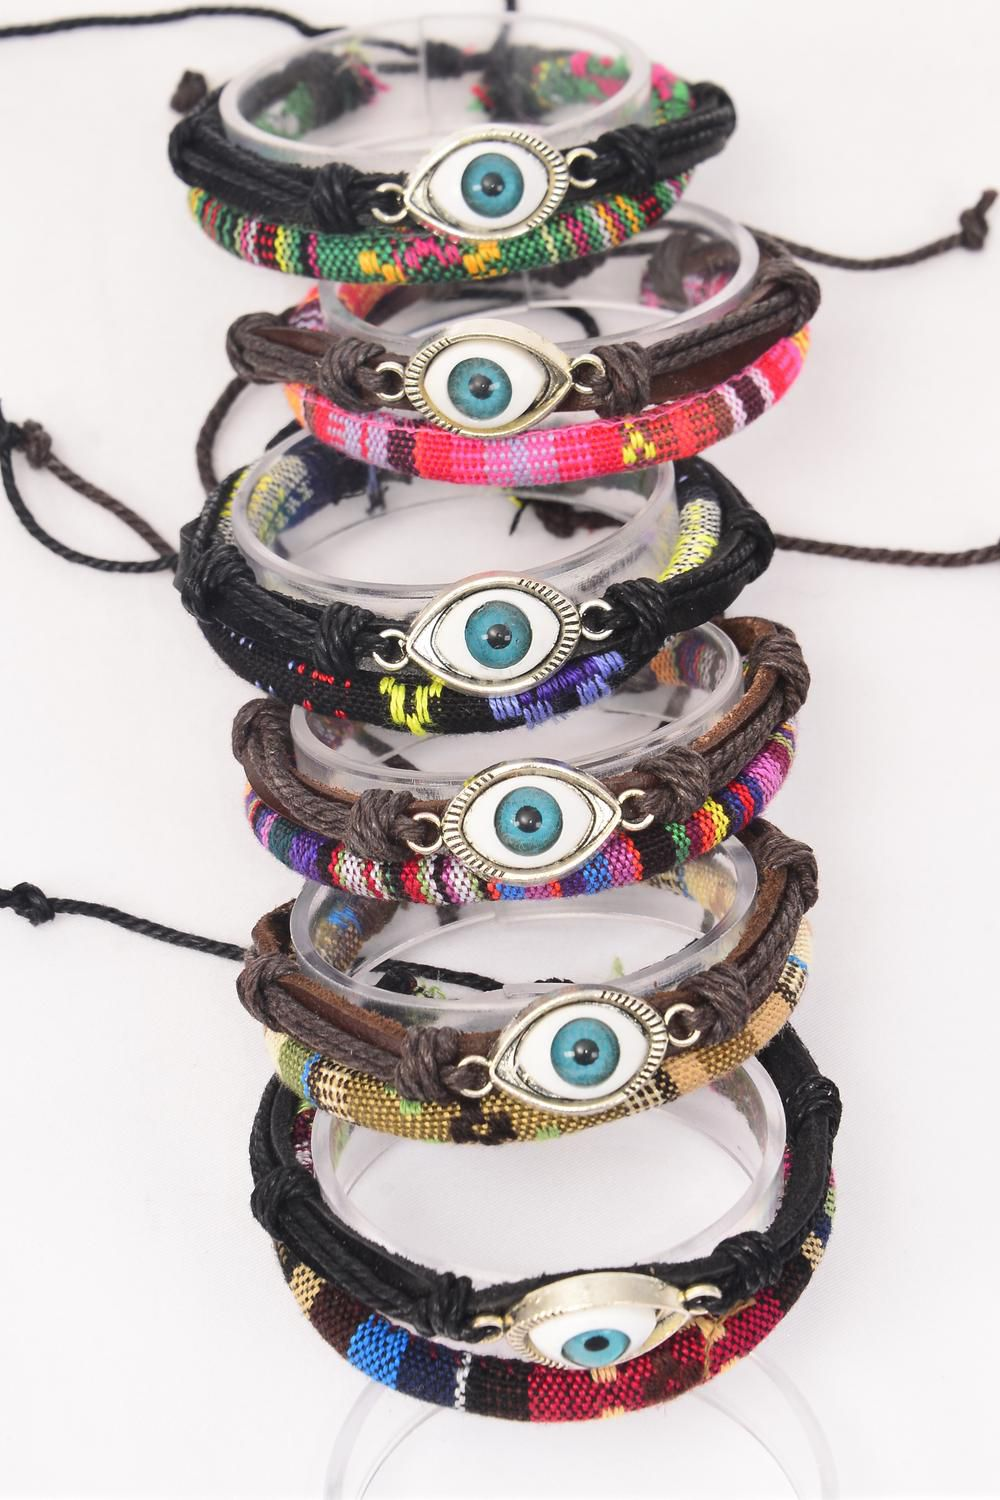 Bracelet Leather Evil Eye & Macrame Wrap Mix Adjustable/DZ **Unisex** Adjustable,2 of each Color Mix,Individual Hang tag & OPP Bag & UPC Code